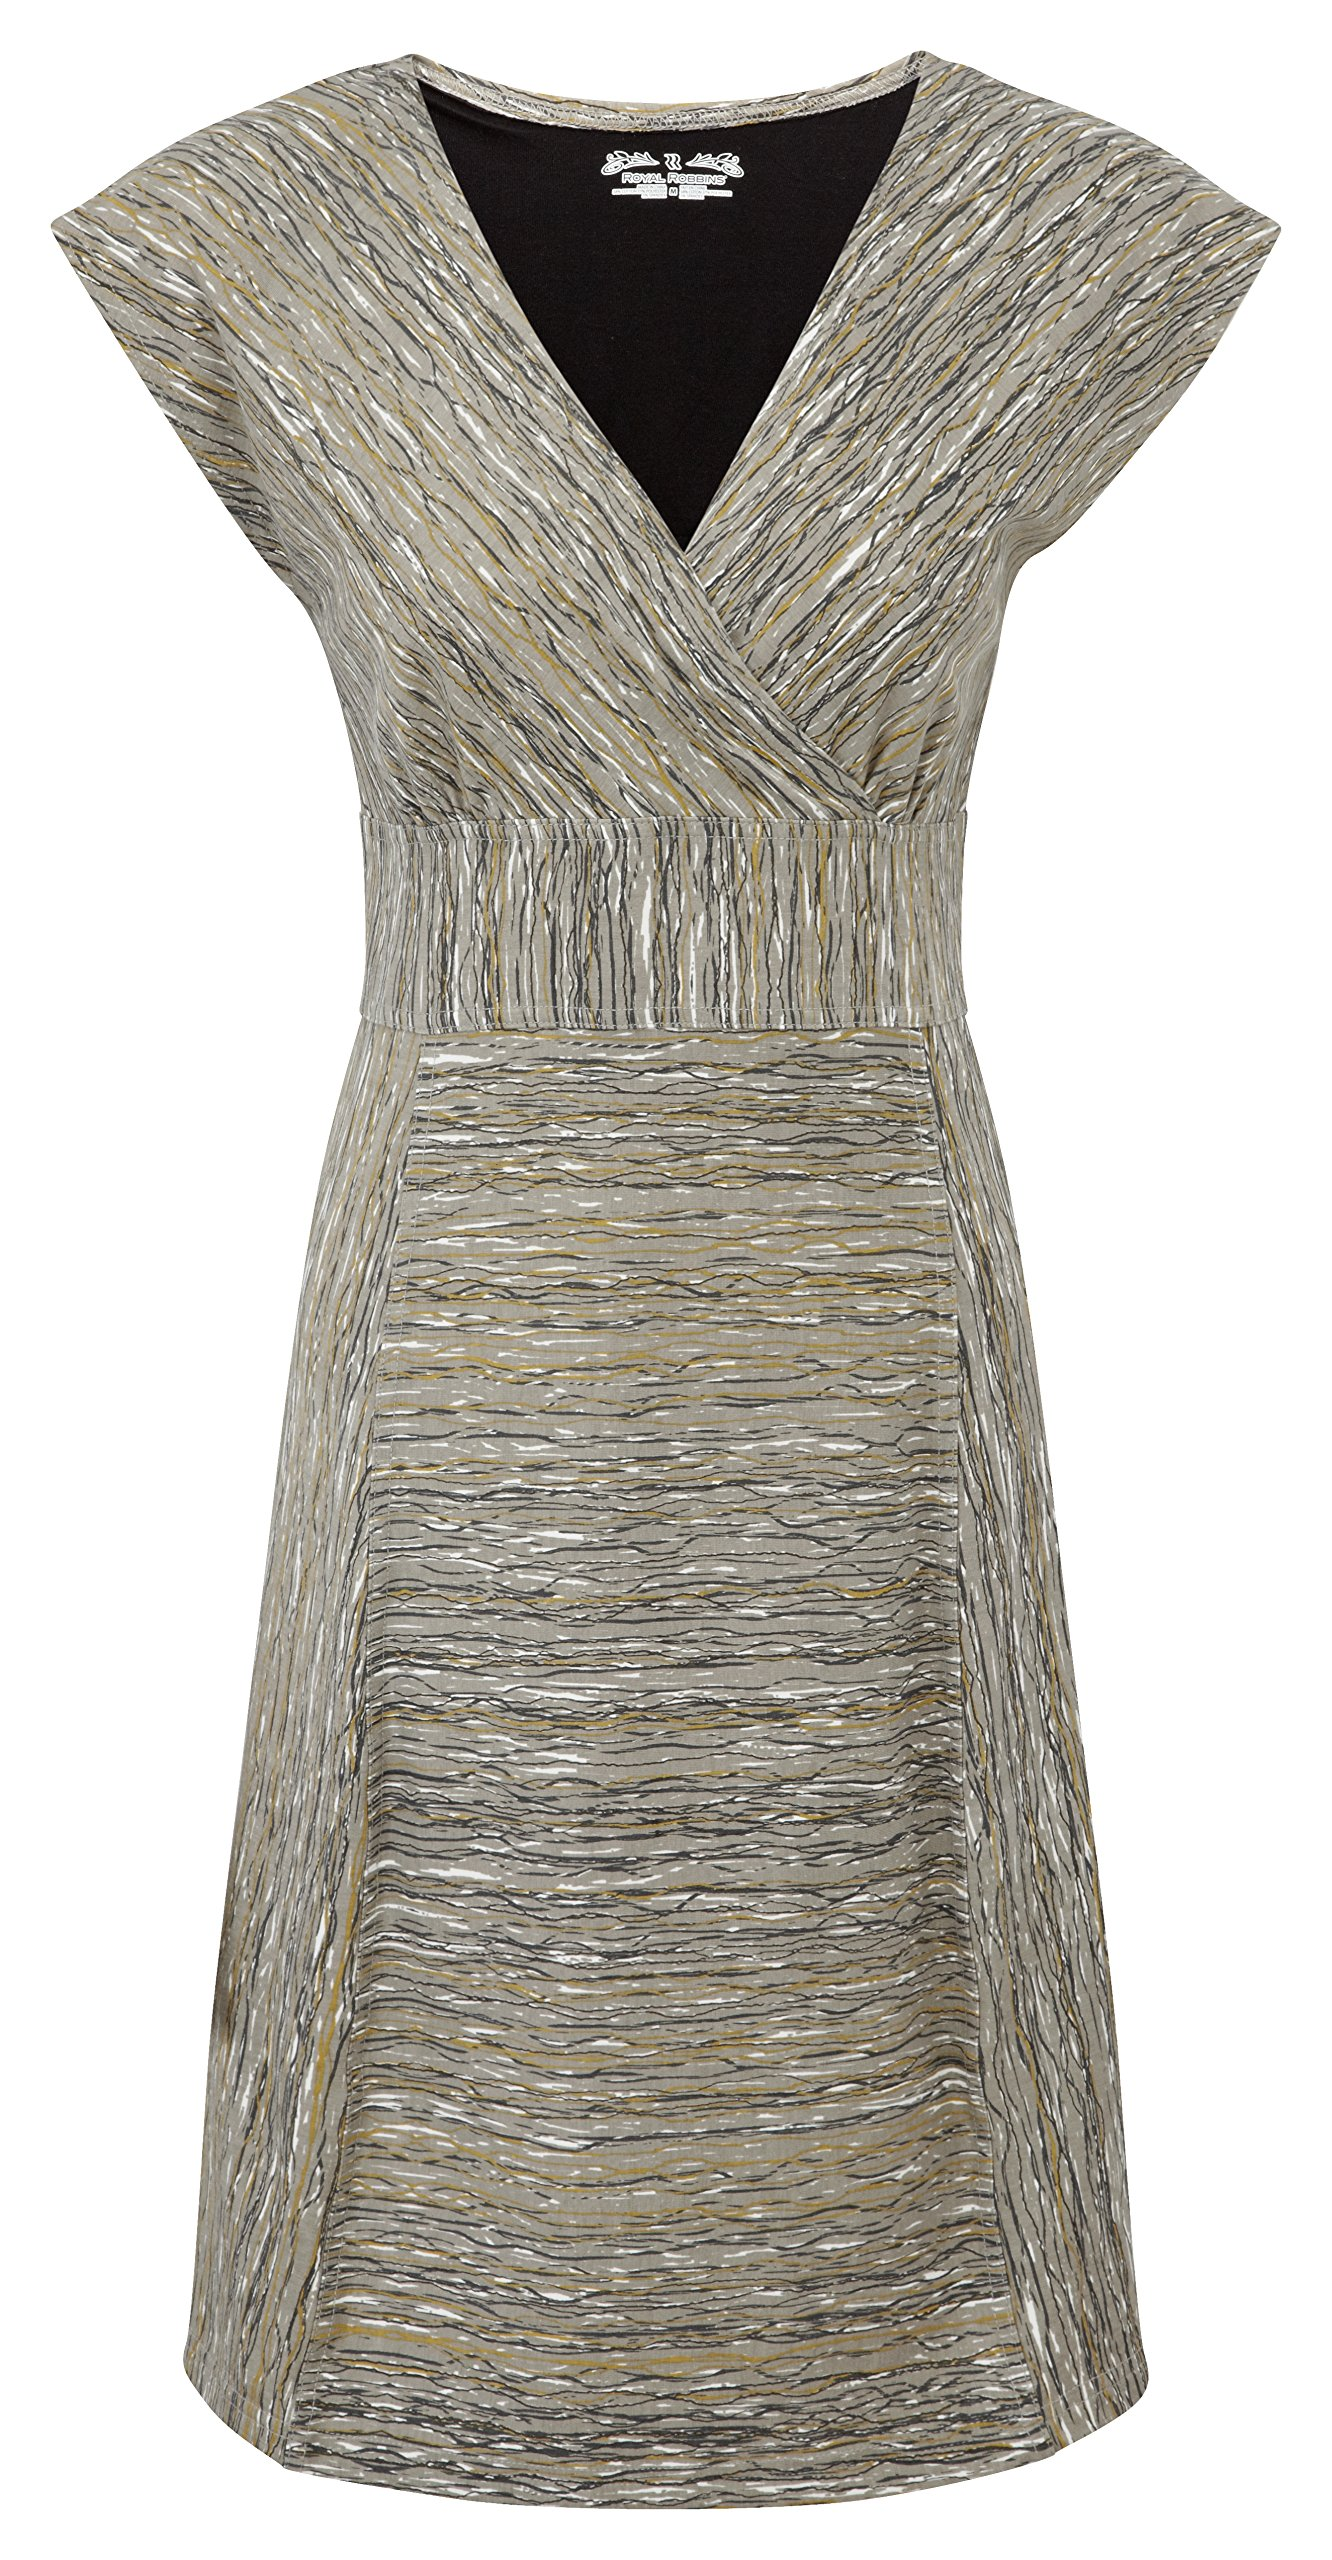 Royal Robbins Women's Essential Rio Dress, Taupe, Large